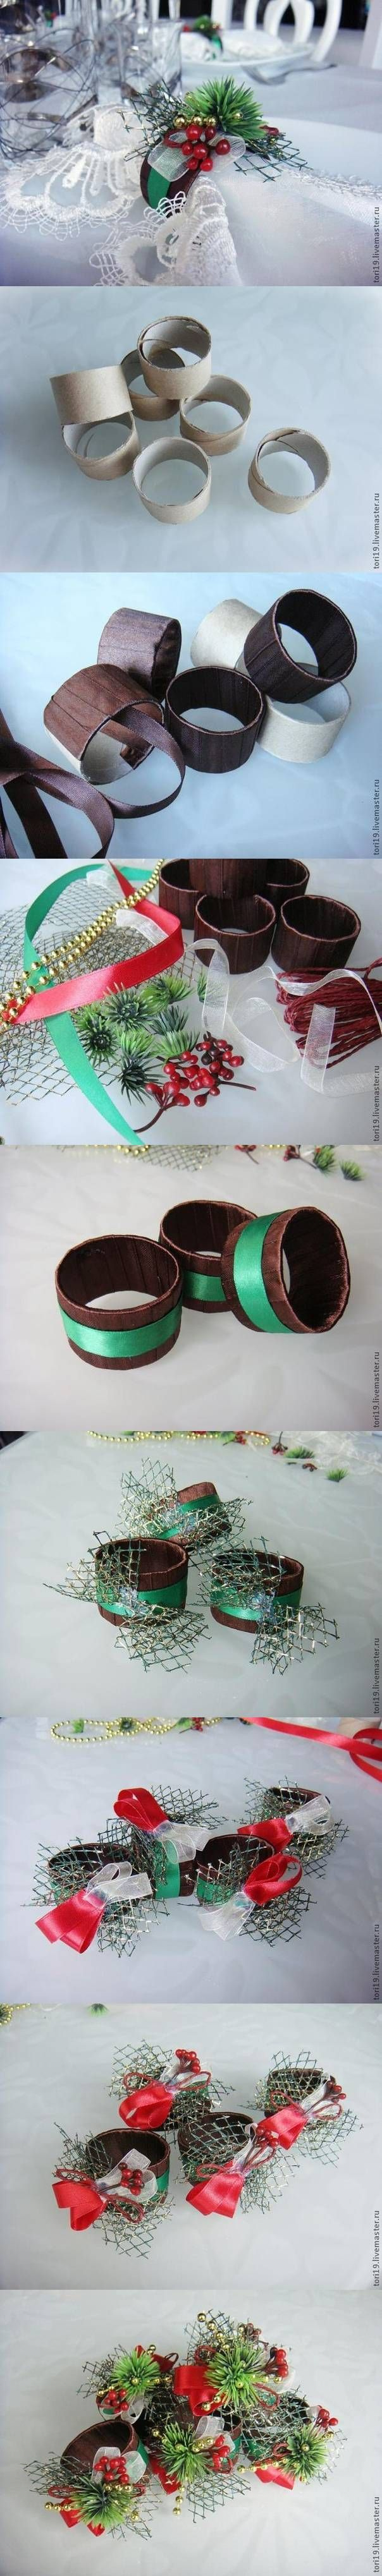 Diy toilet paper roll decorative napkin rings toilets for Decorative paper rolls